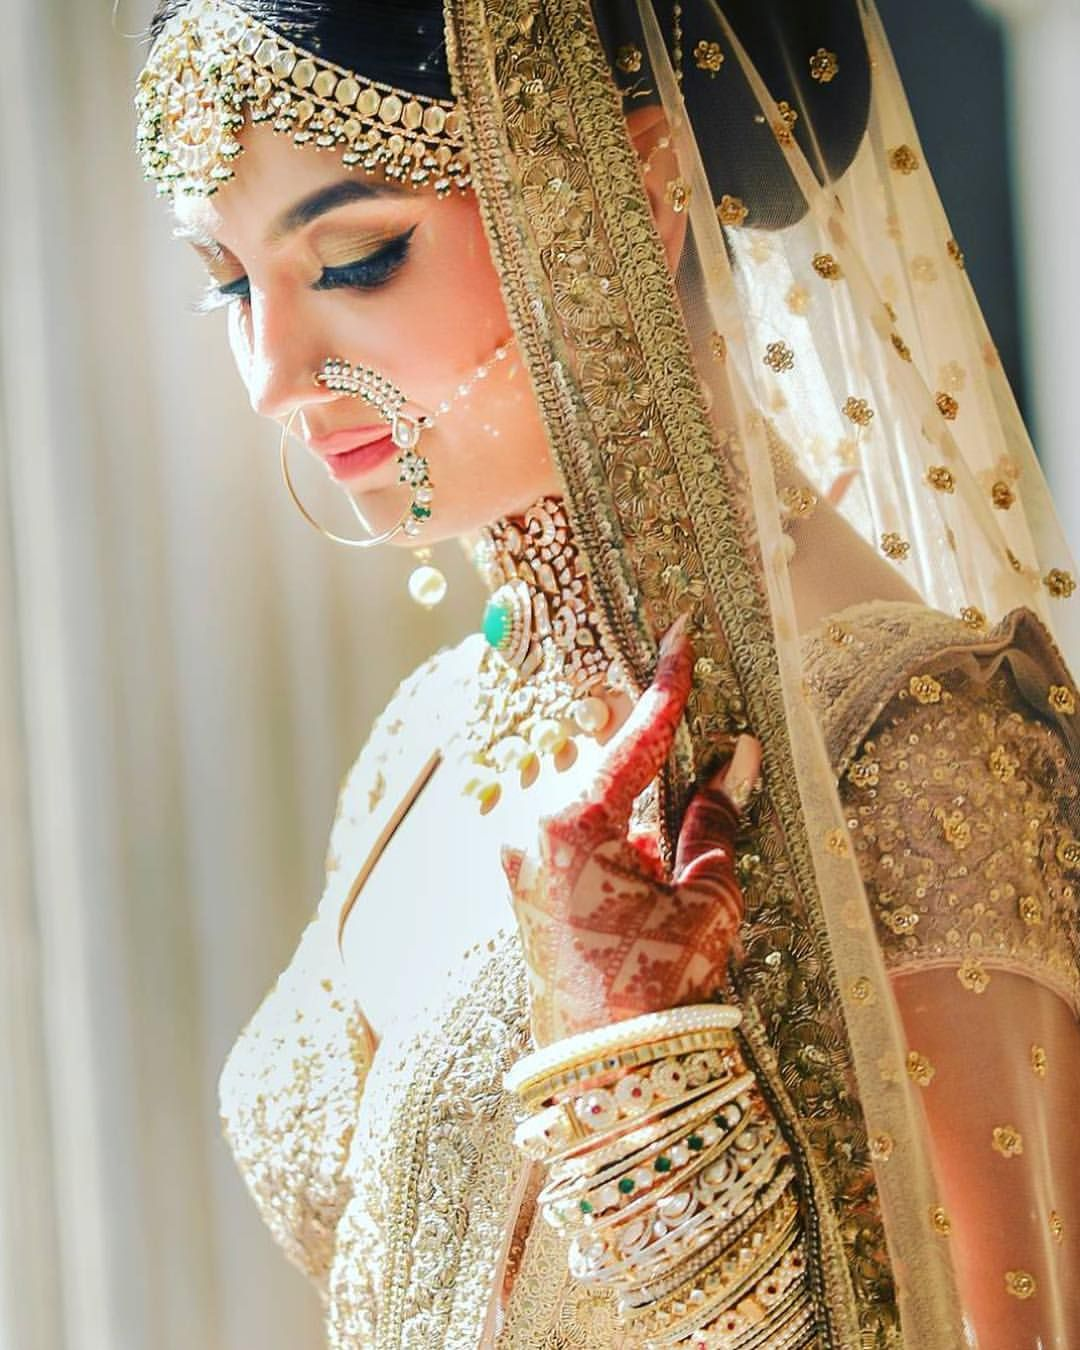 9 598 likes 41 comments indian wedding buzz for Wedding dress instagram